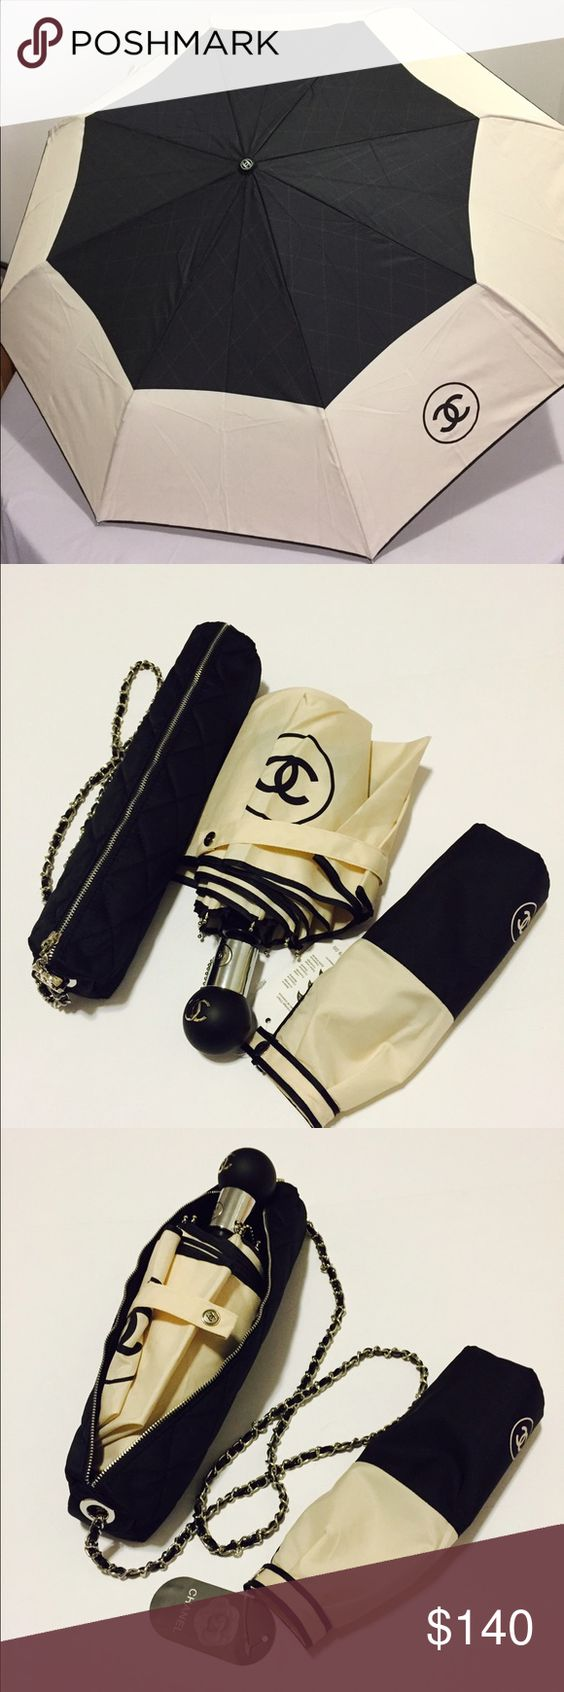 "Chanel Automatic Umbrella New with Sleeve and Box Auth Chanel automatic umbrella, brand New with tag. Comes with the carrying case and a Chanel box. The case has a chain, so you can wear it crossbody. Color - cream/black. Looks chick! Umbrella is 39"" in diameter when open. The Chanel box is not in the photo but is included. Chanel Accessories Umbrellas"